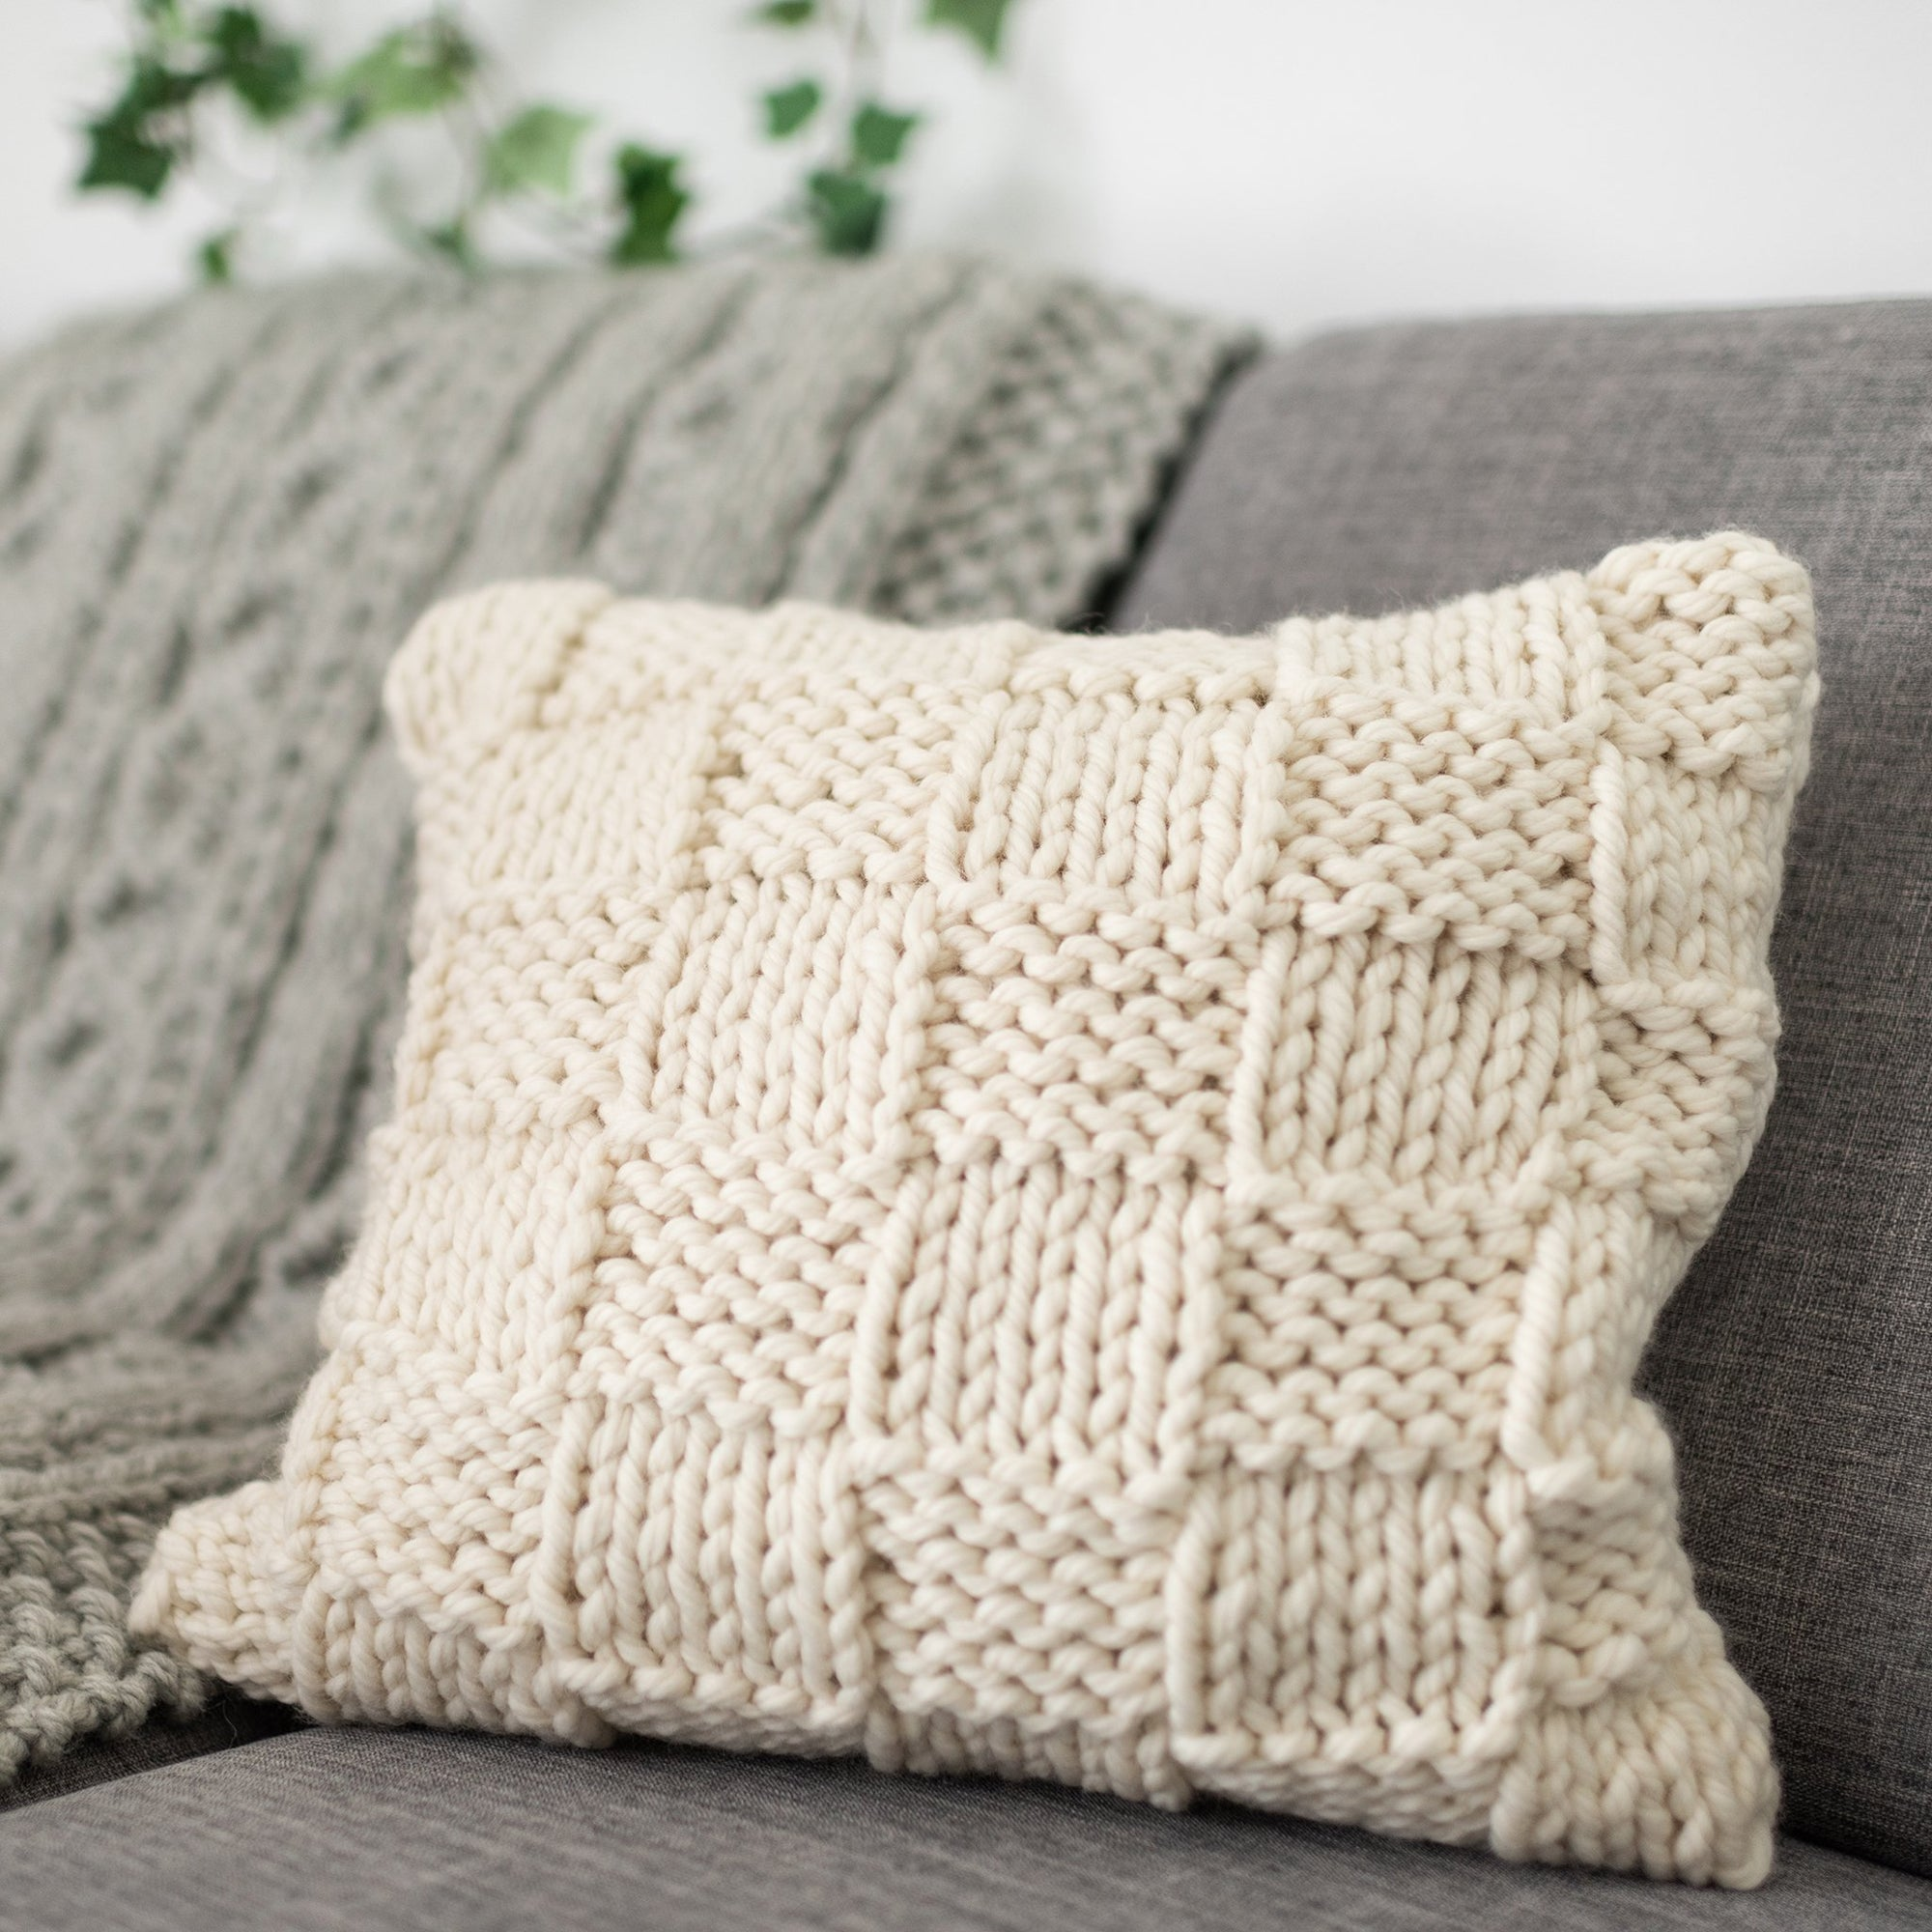 Free PDF Knitting Pattern: Lazy Basketweave Cushion